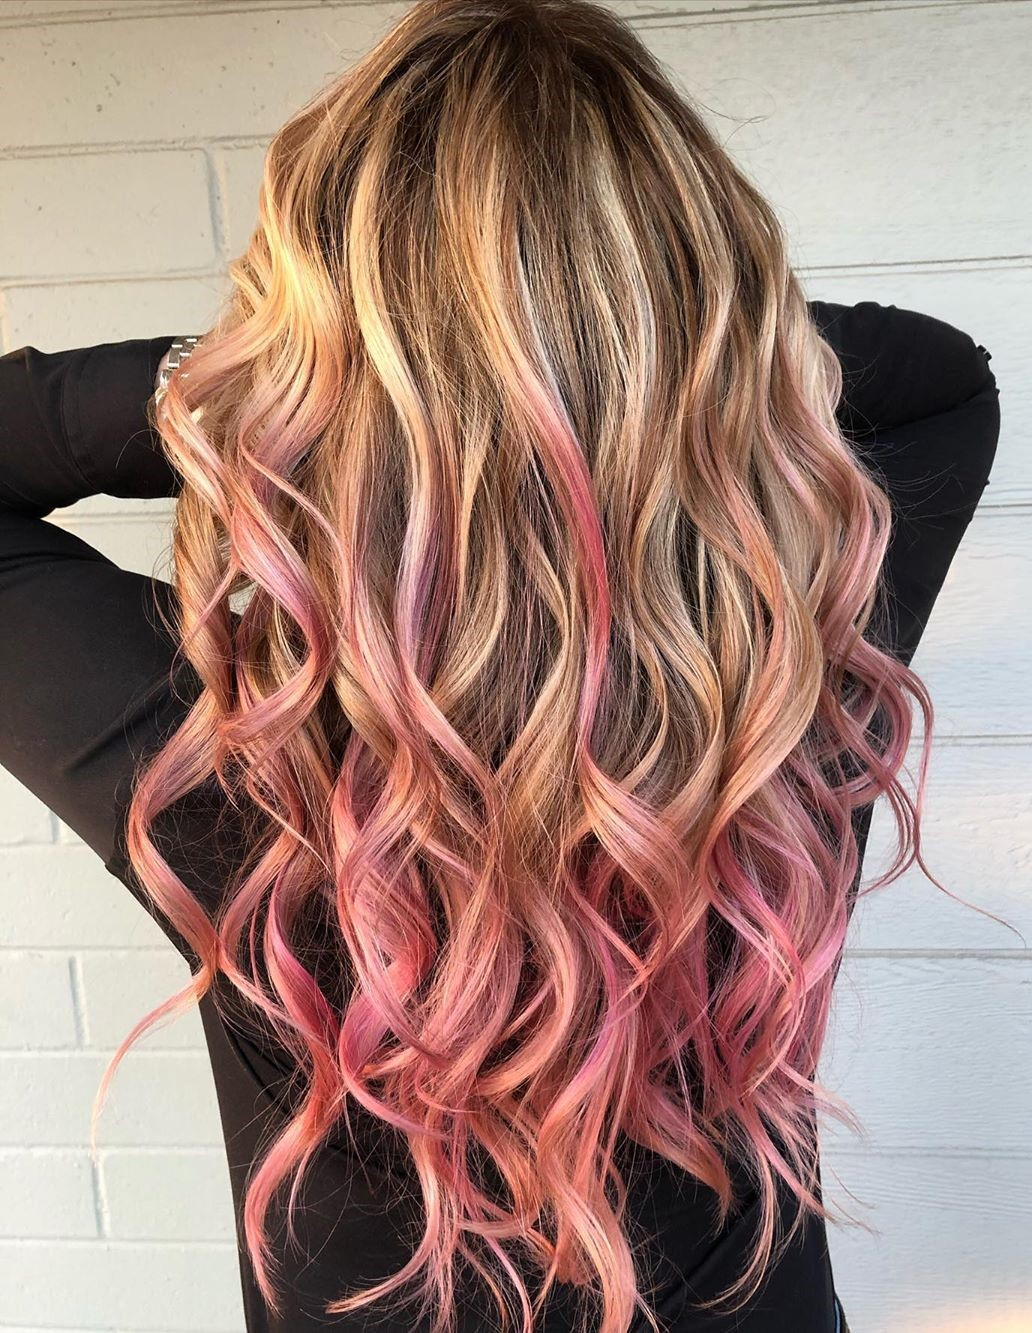 Long Blonde Hair with Pink Tips